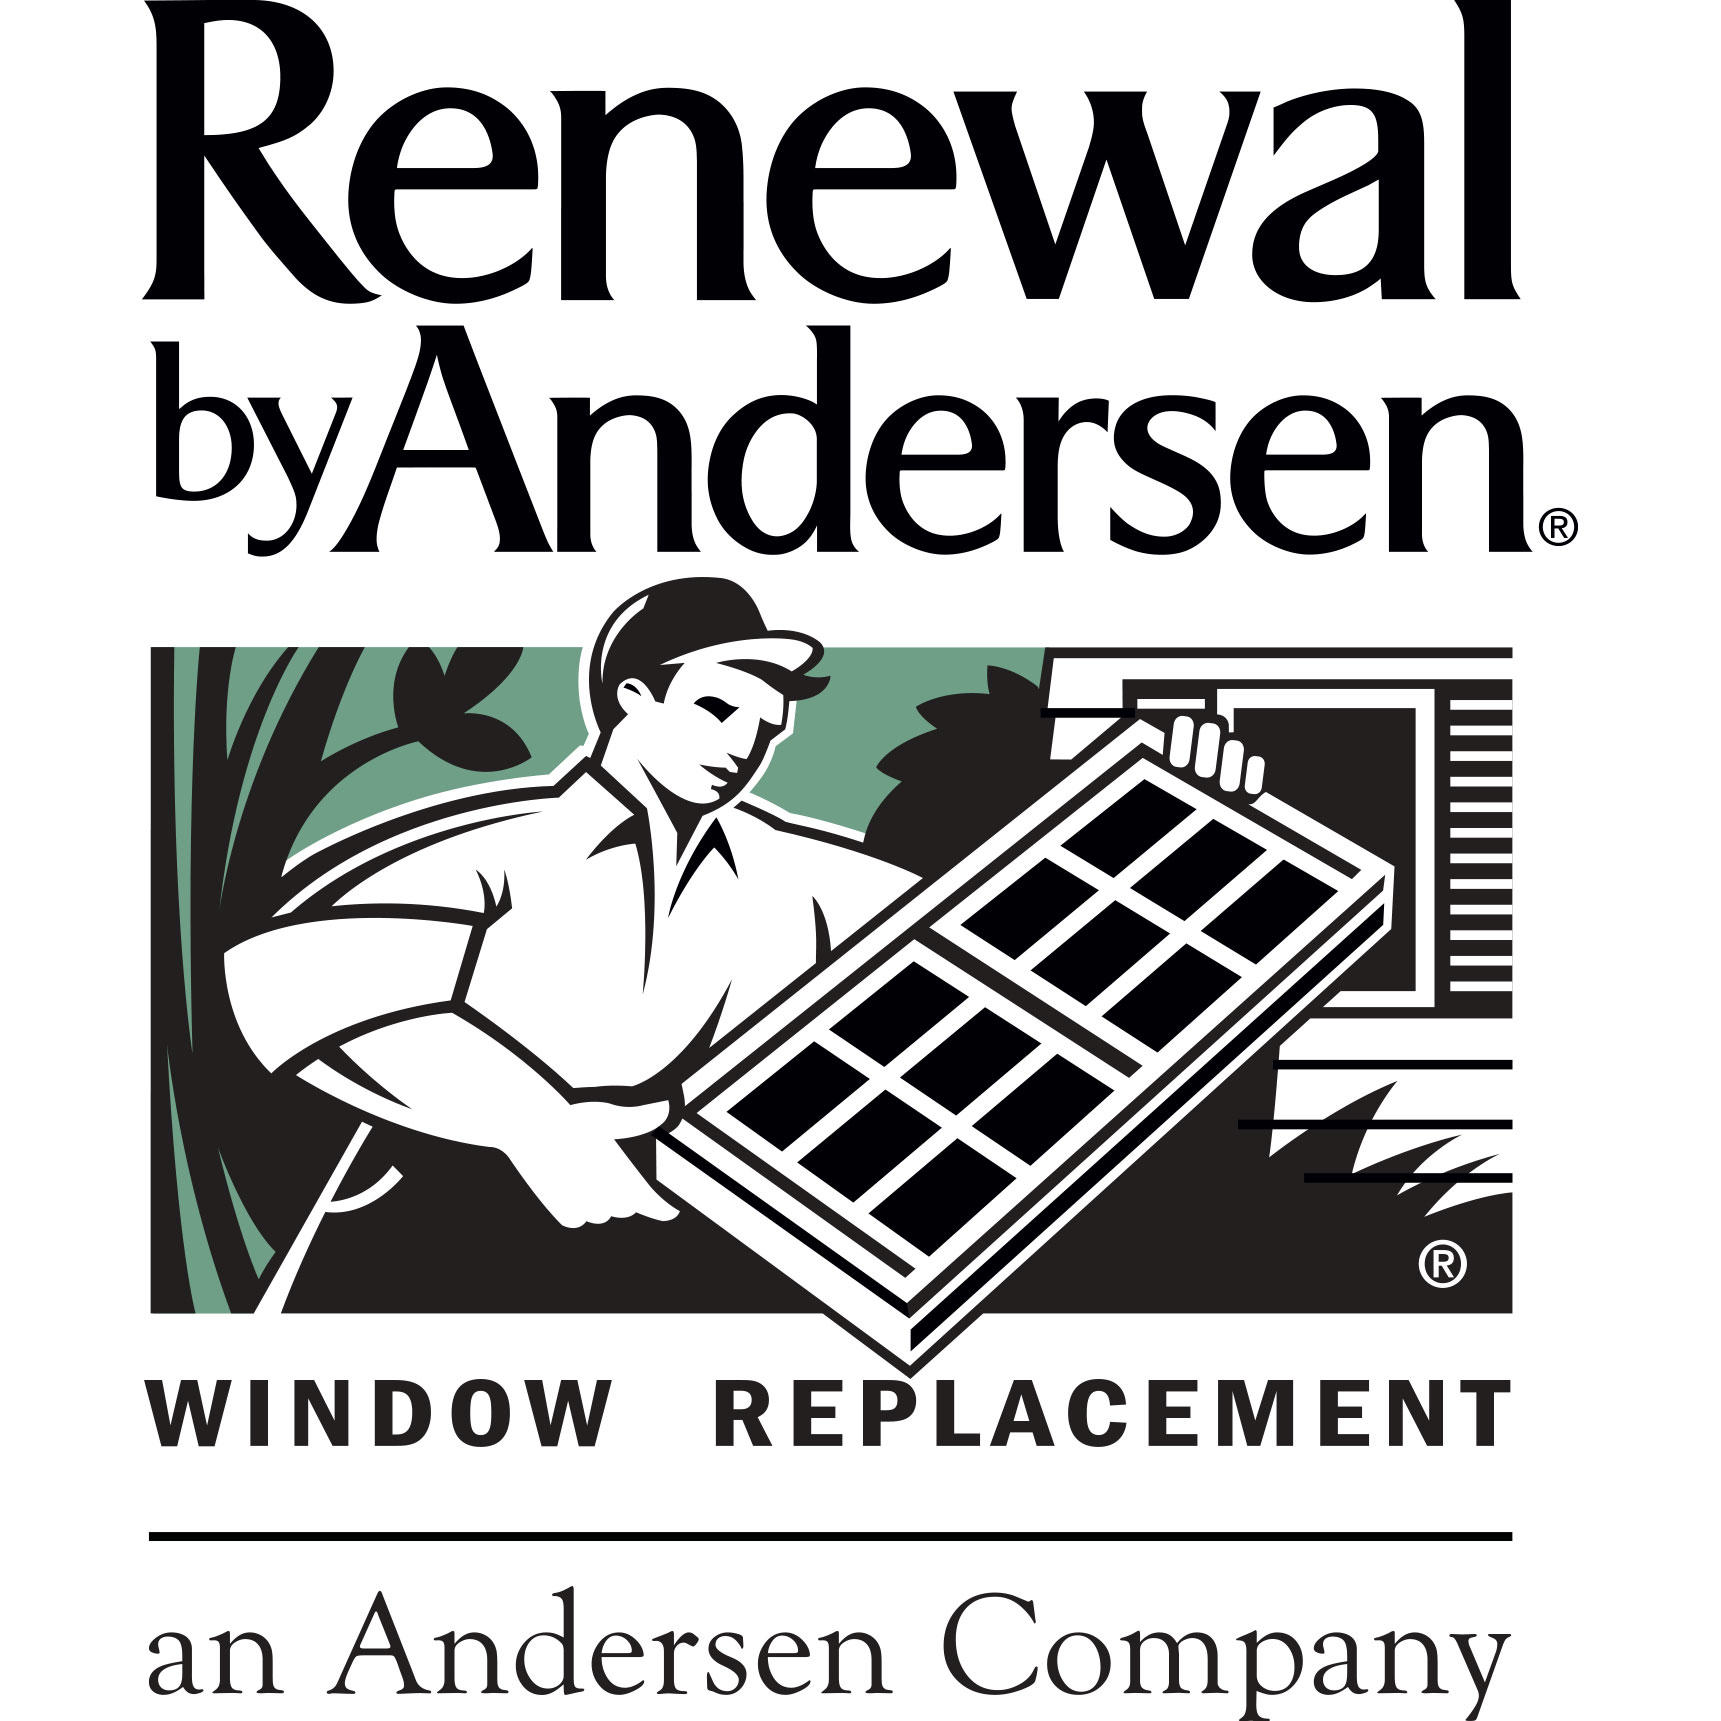 Renewal by Andersen of South Louisiana